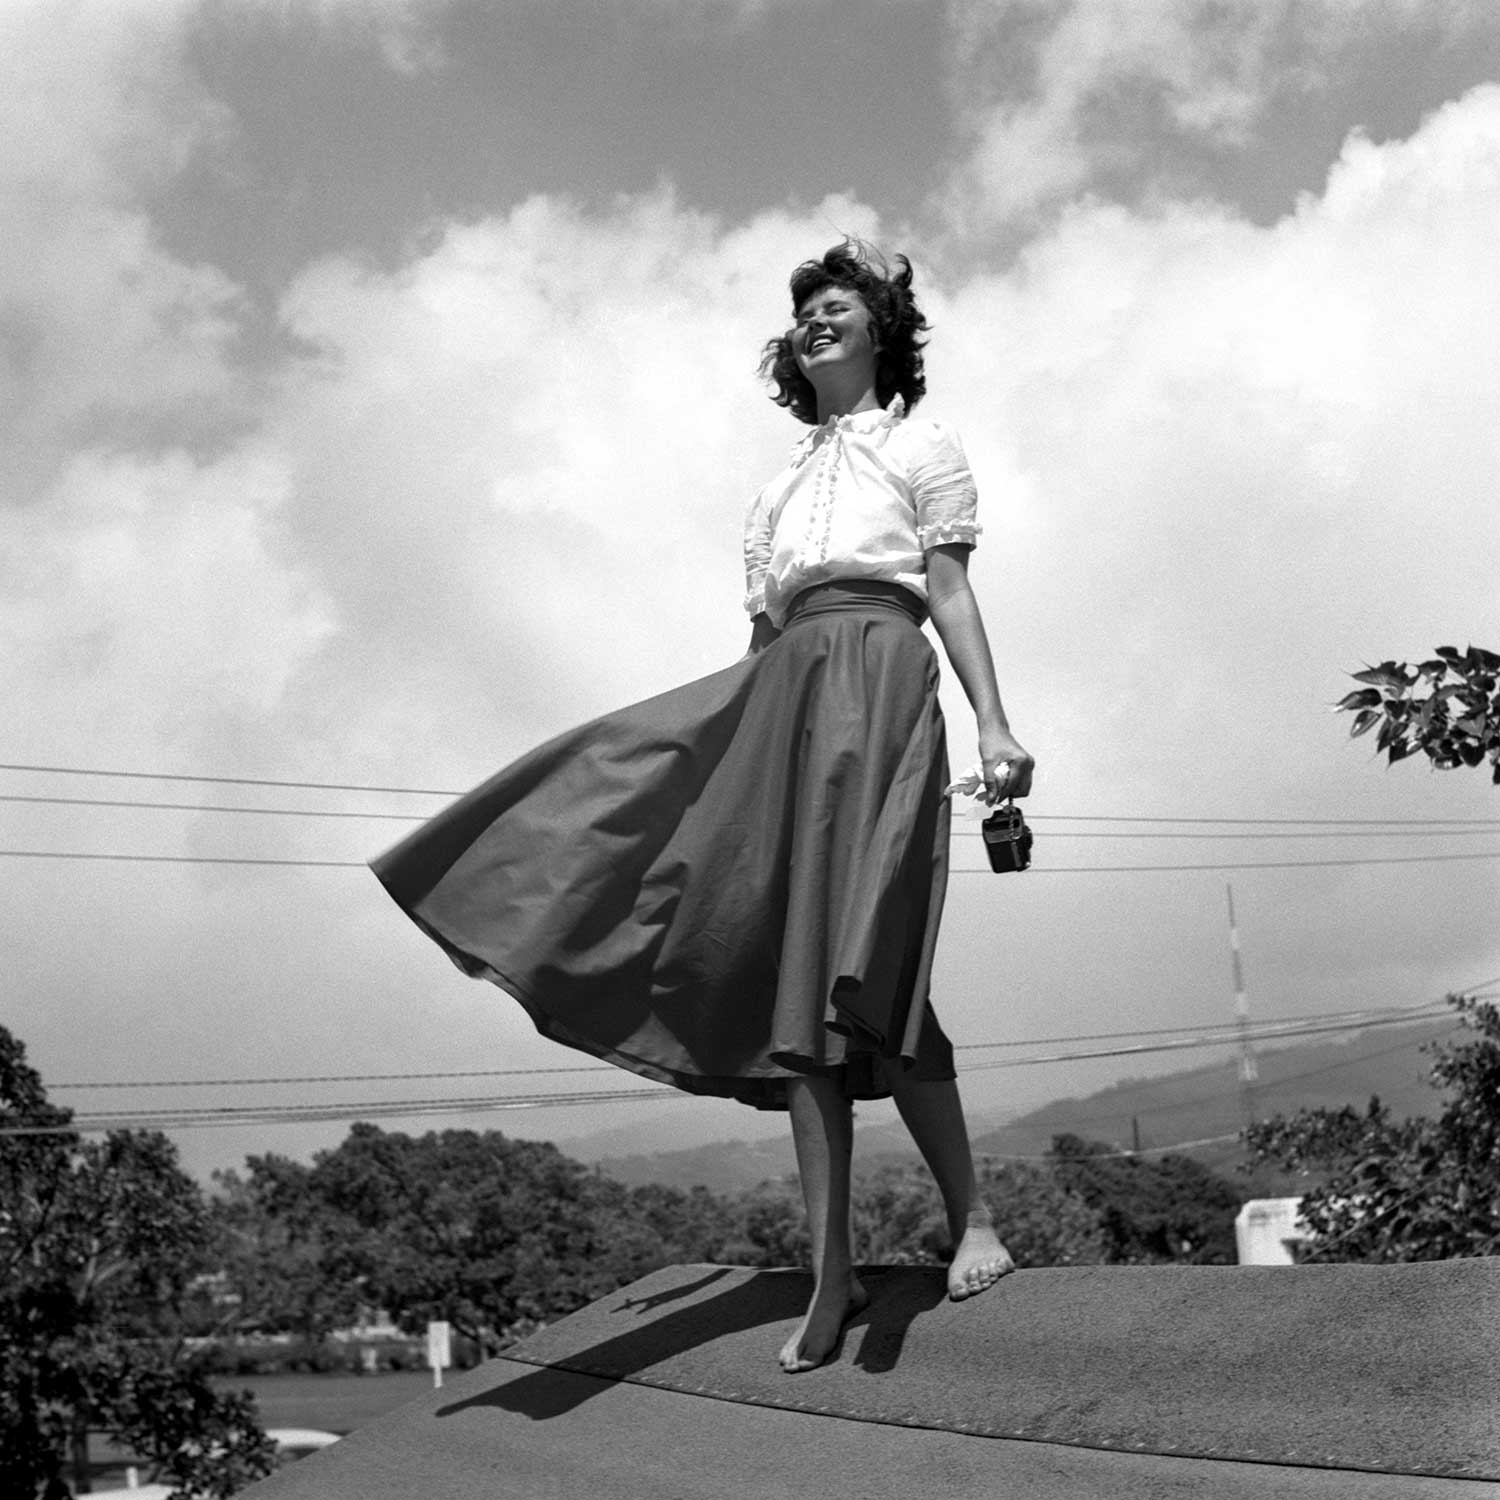 Black and White photo of woman standing on roof, wind blowing her skirt